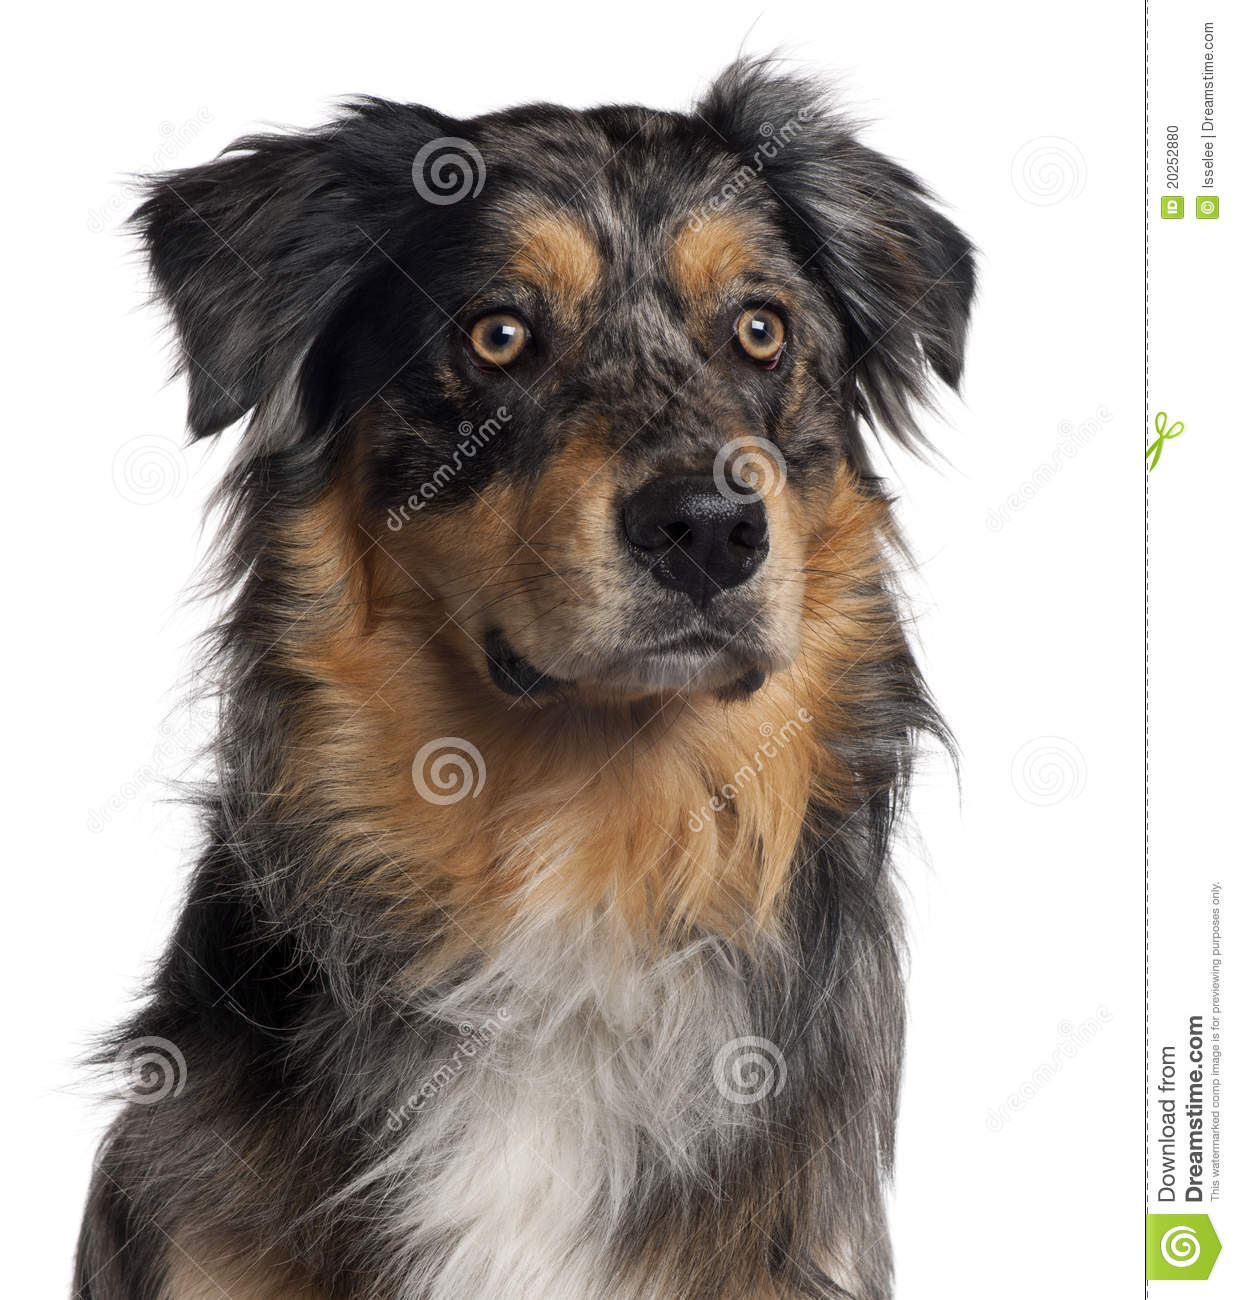 Close-up of Australian Shepherd dog, 6 months old, in front of white